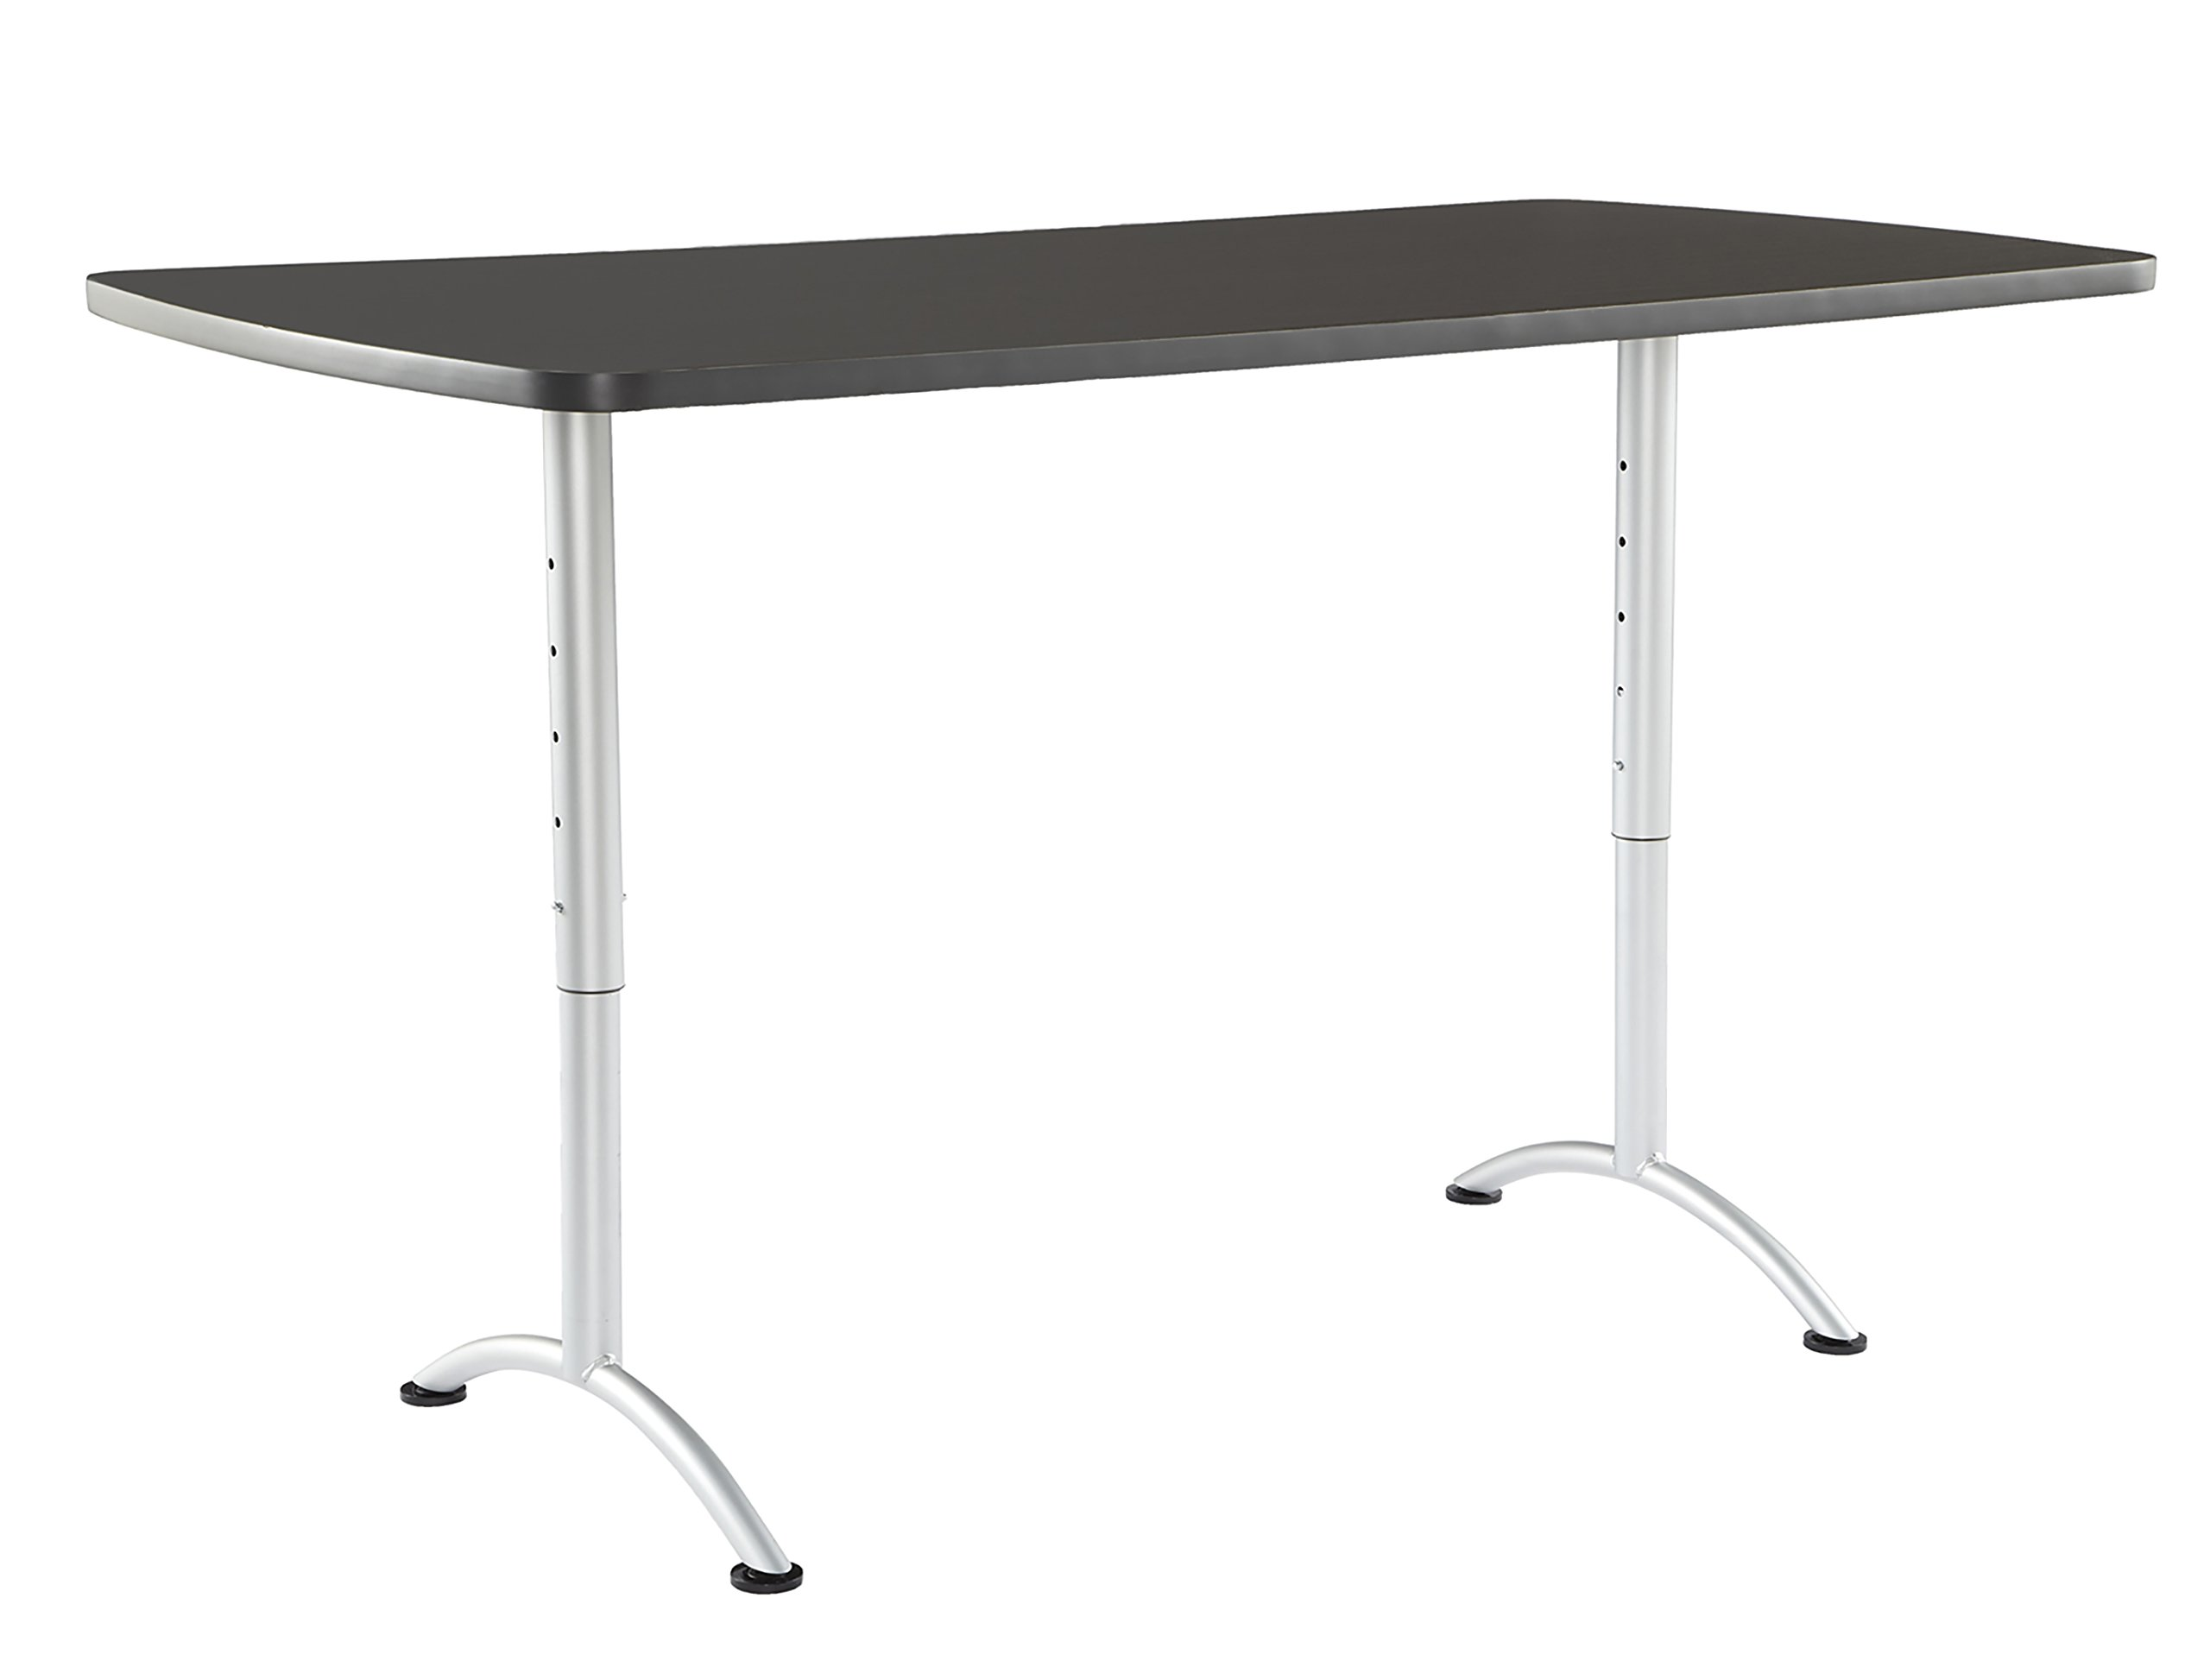 Iceberg ICE69327 ARC 6-foot Adjustable Height Rectangular Conference Table, 36'' x 72'', Graphite/Silver Leg